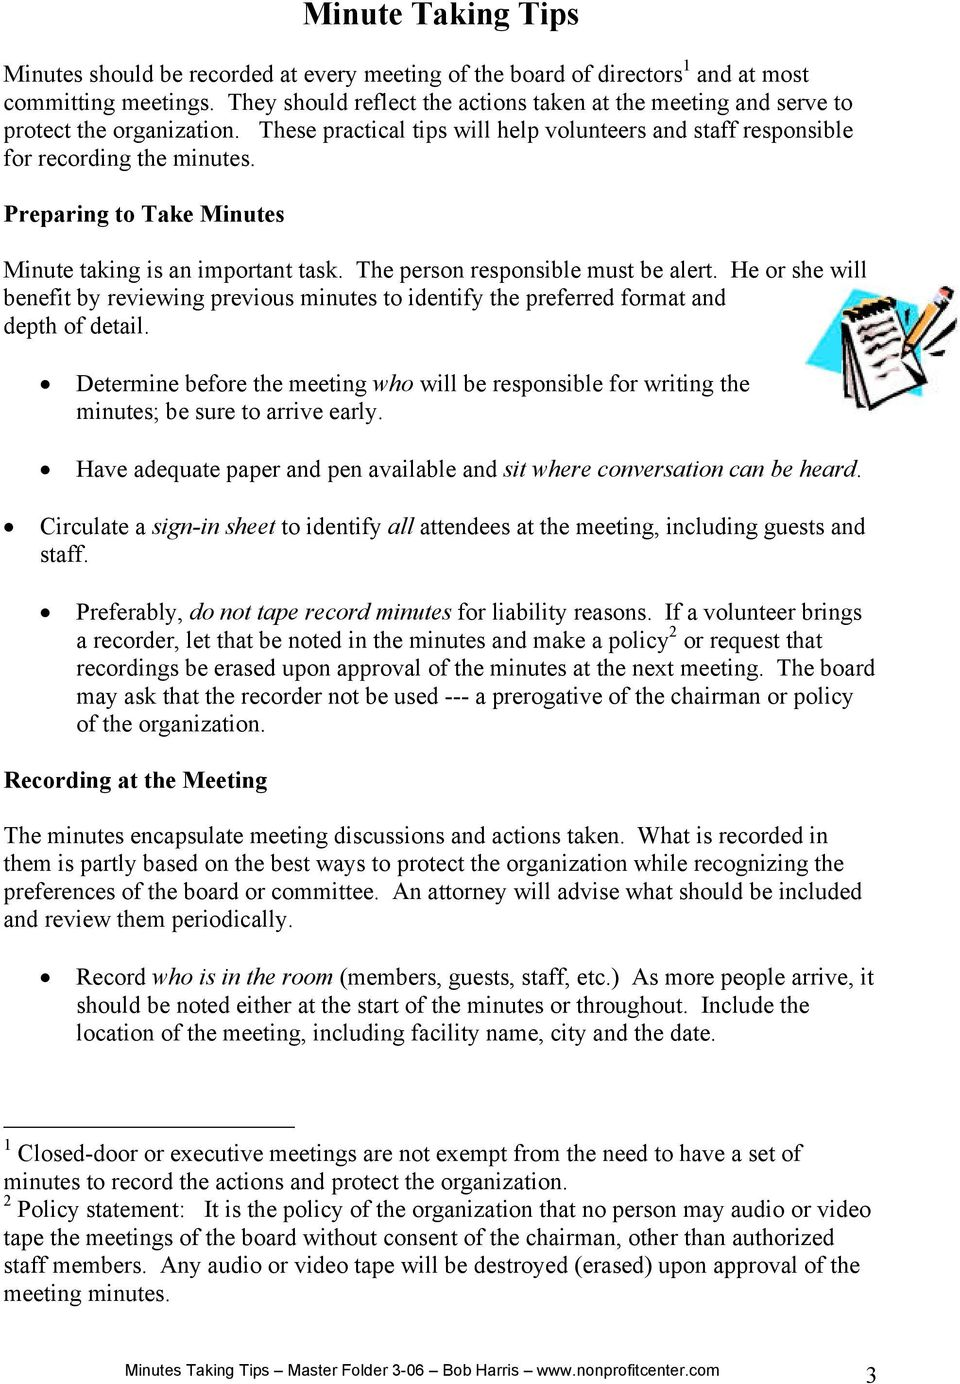 Enchanting Minutes Taking Format Picture Collection - Resume Ideas ...